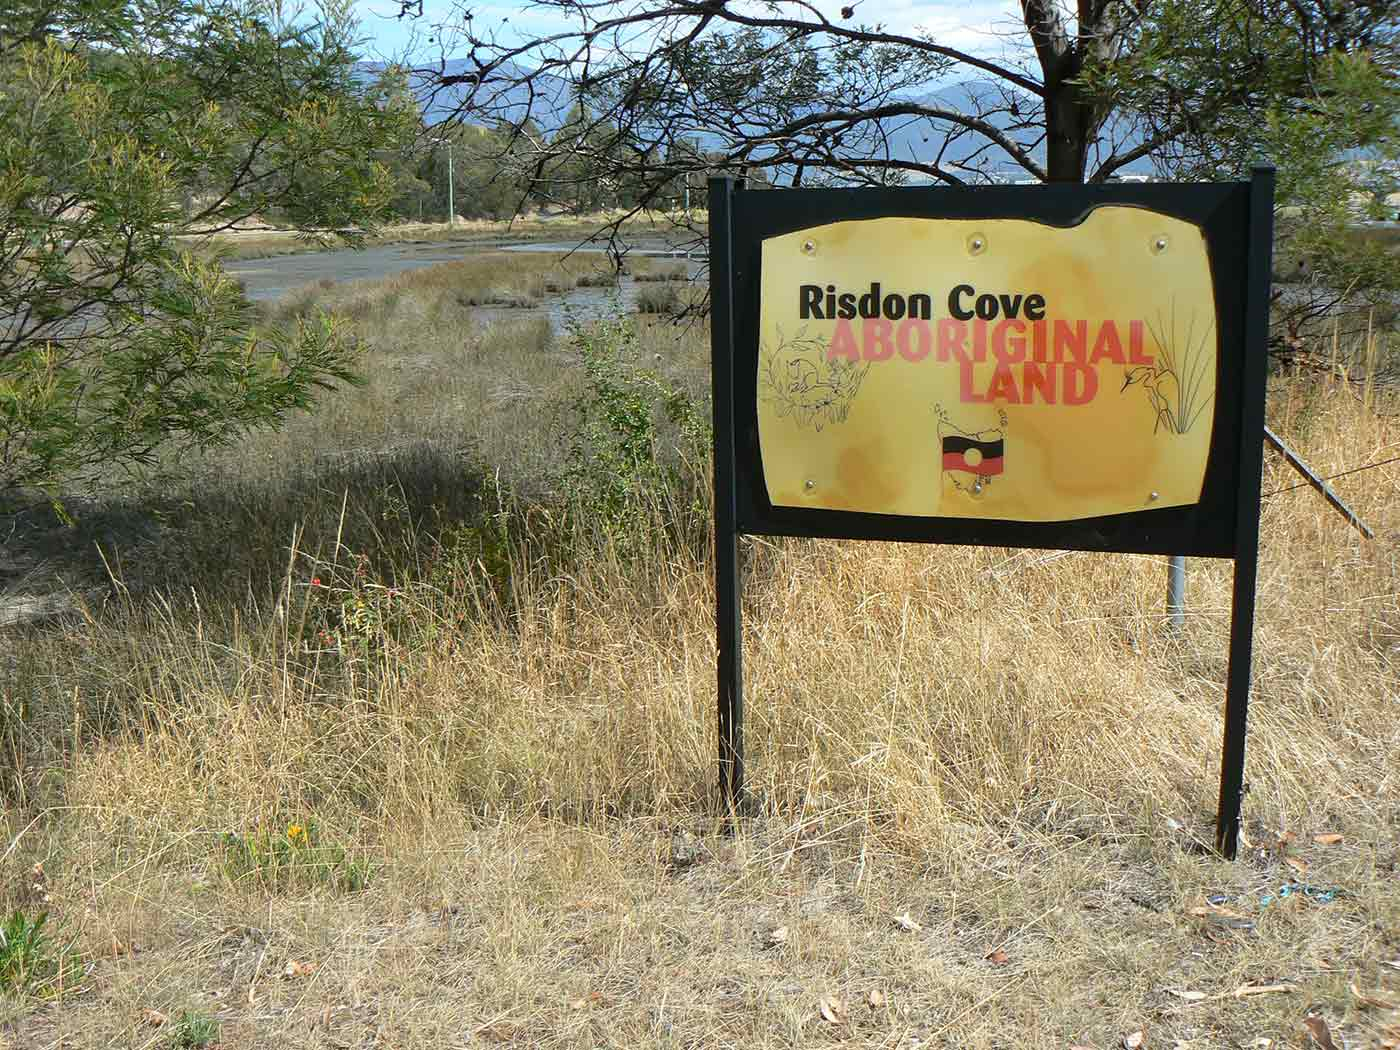 A sign that reads 'Risdon Cove, Aboriginal Land'.